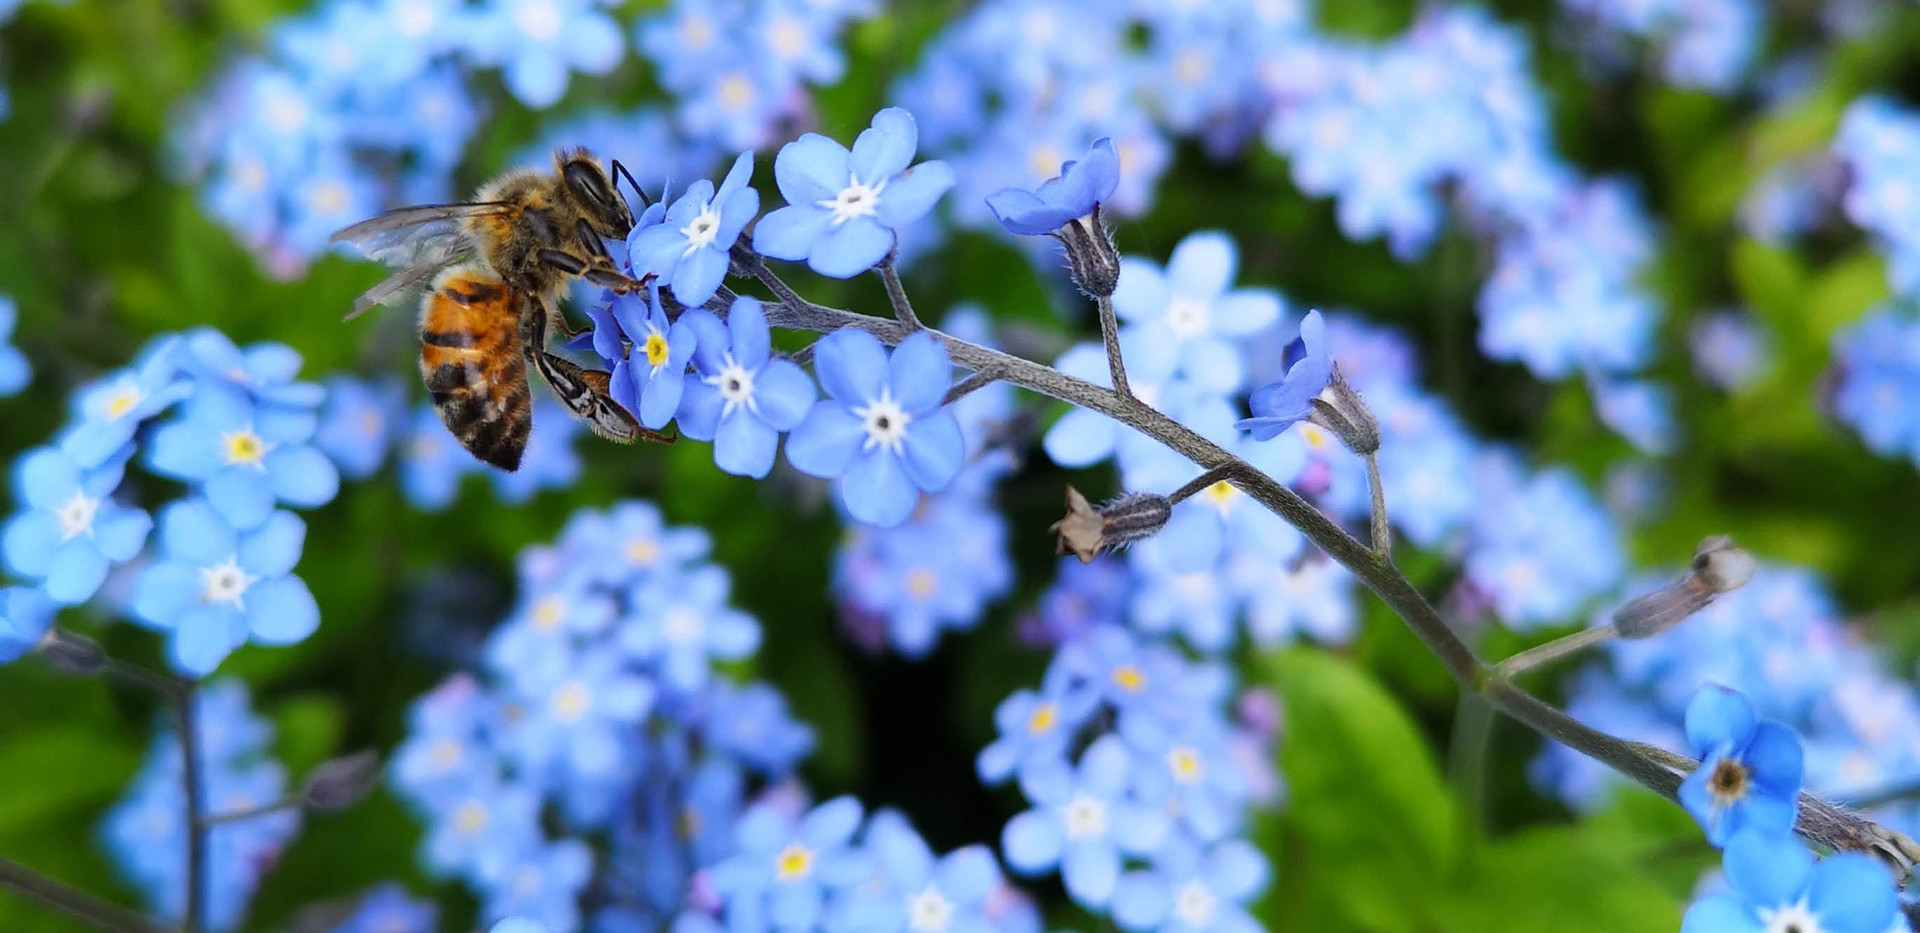 Honeybee on Forget-Me-Not by Stewart Spinks